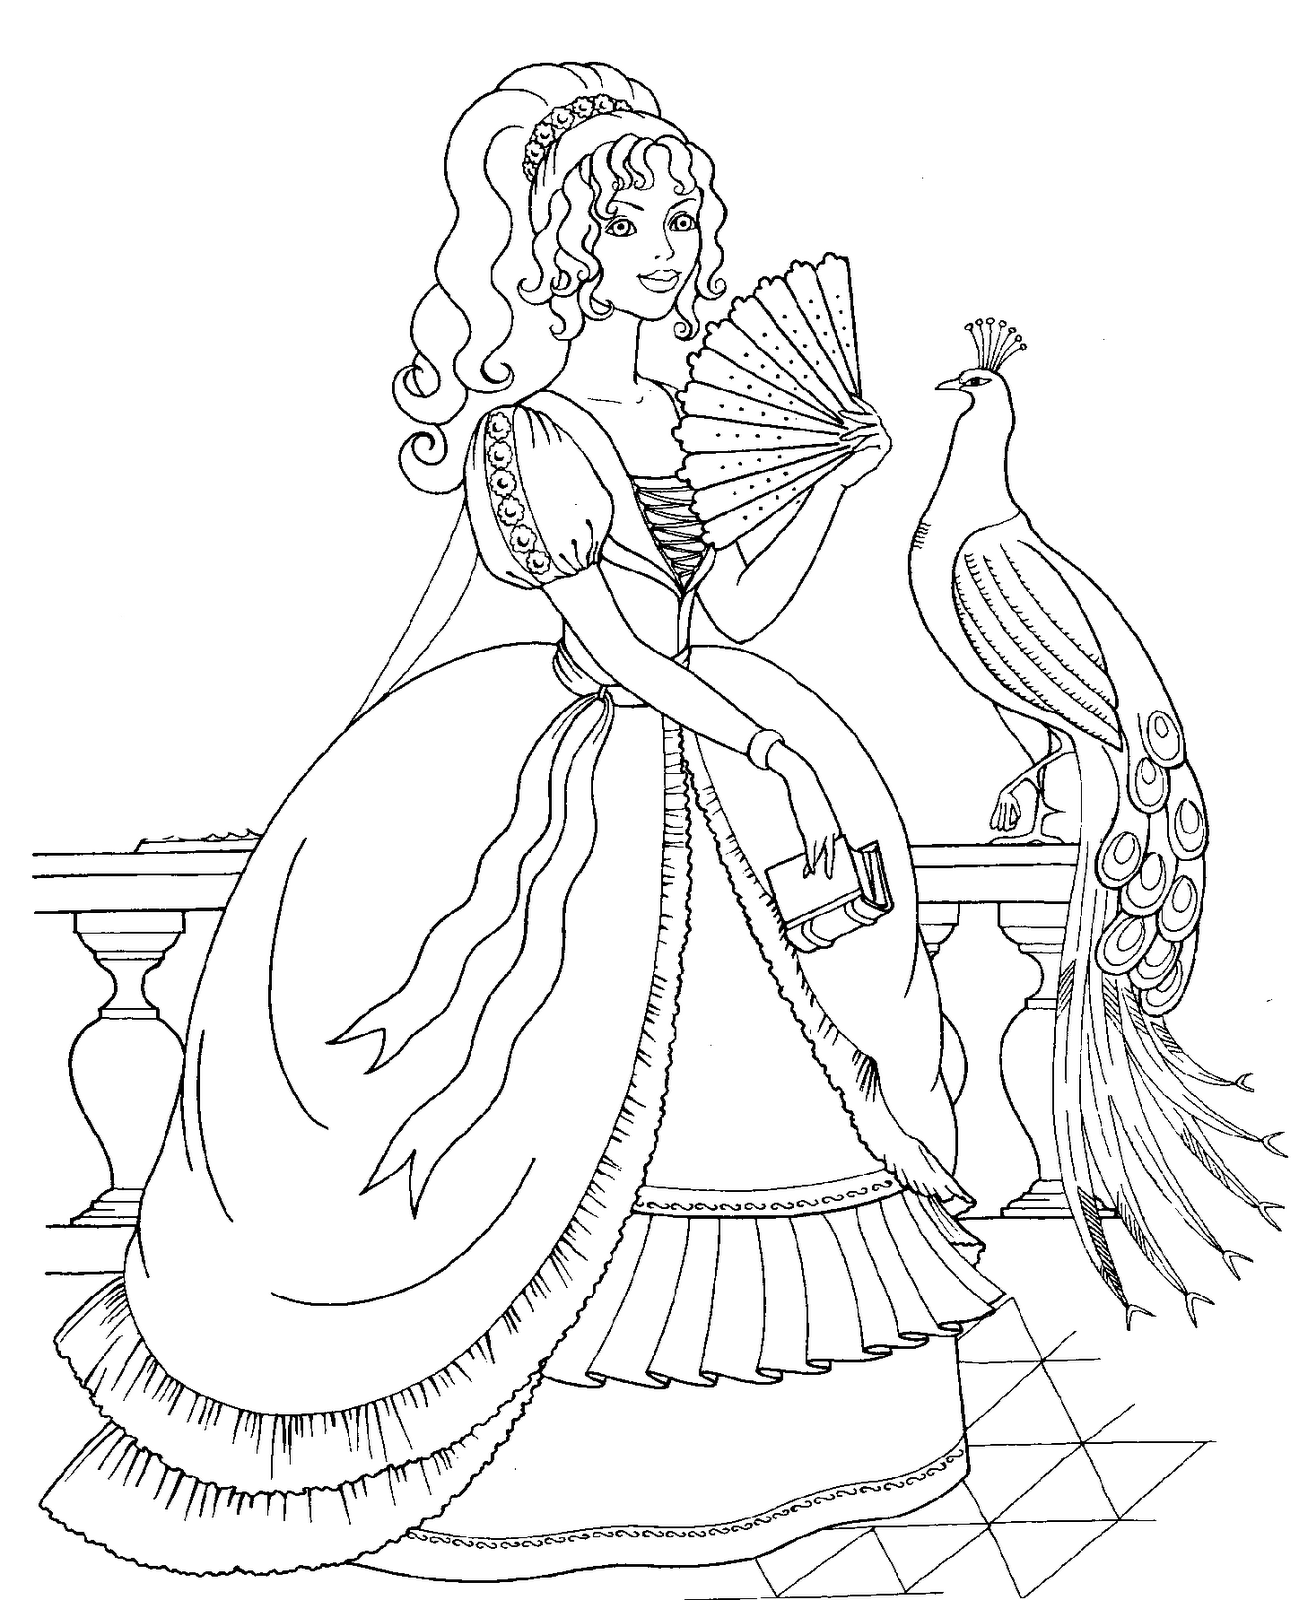 Coloring Book Pages Princess : Disney princess and animals coloring pages to kids